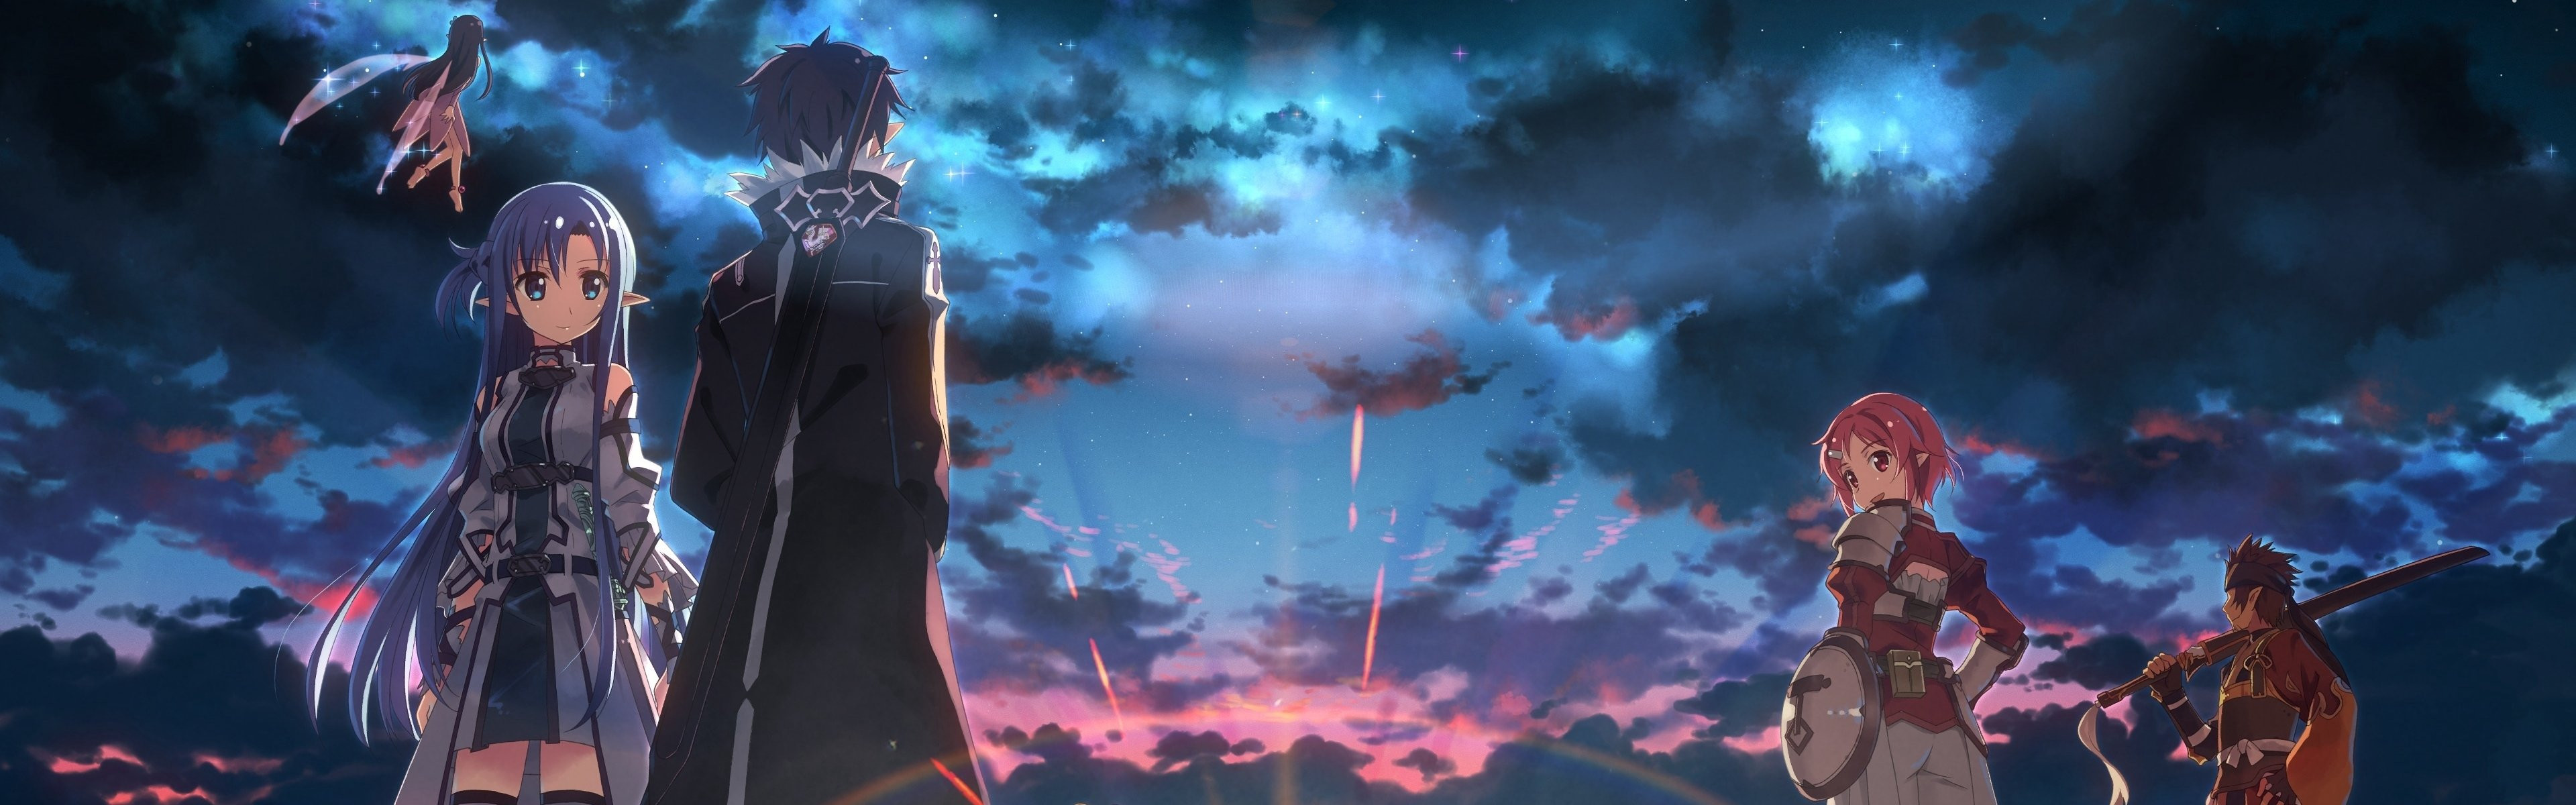 Dual Monitor Wallpapers Anime 56 Background Pictures